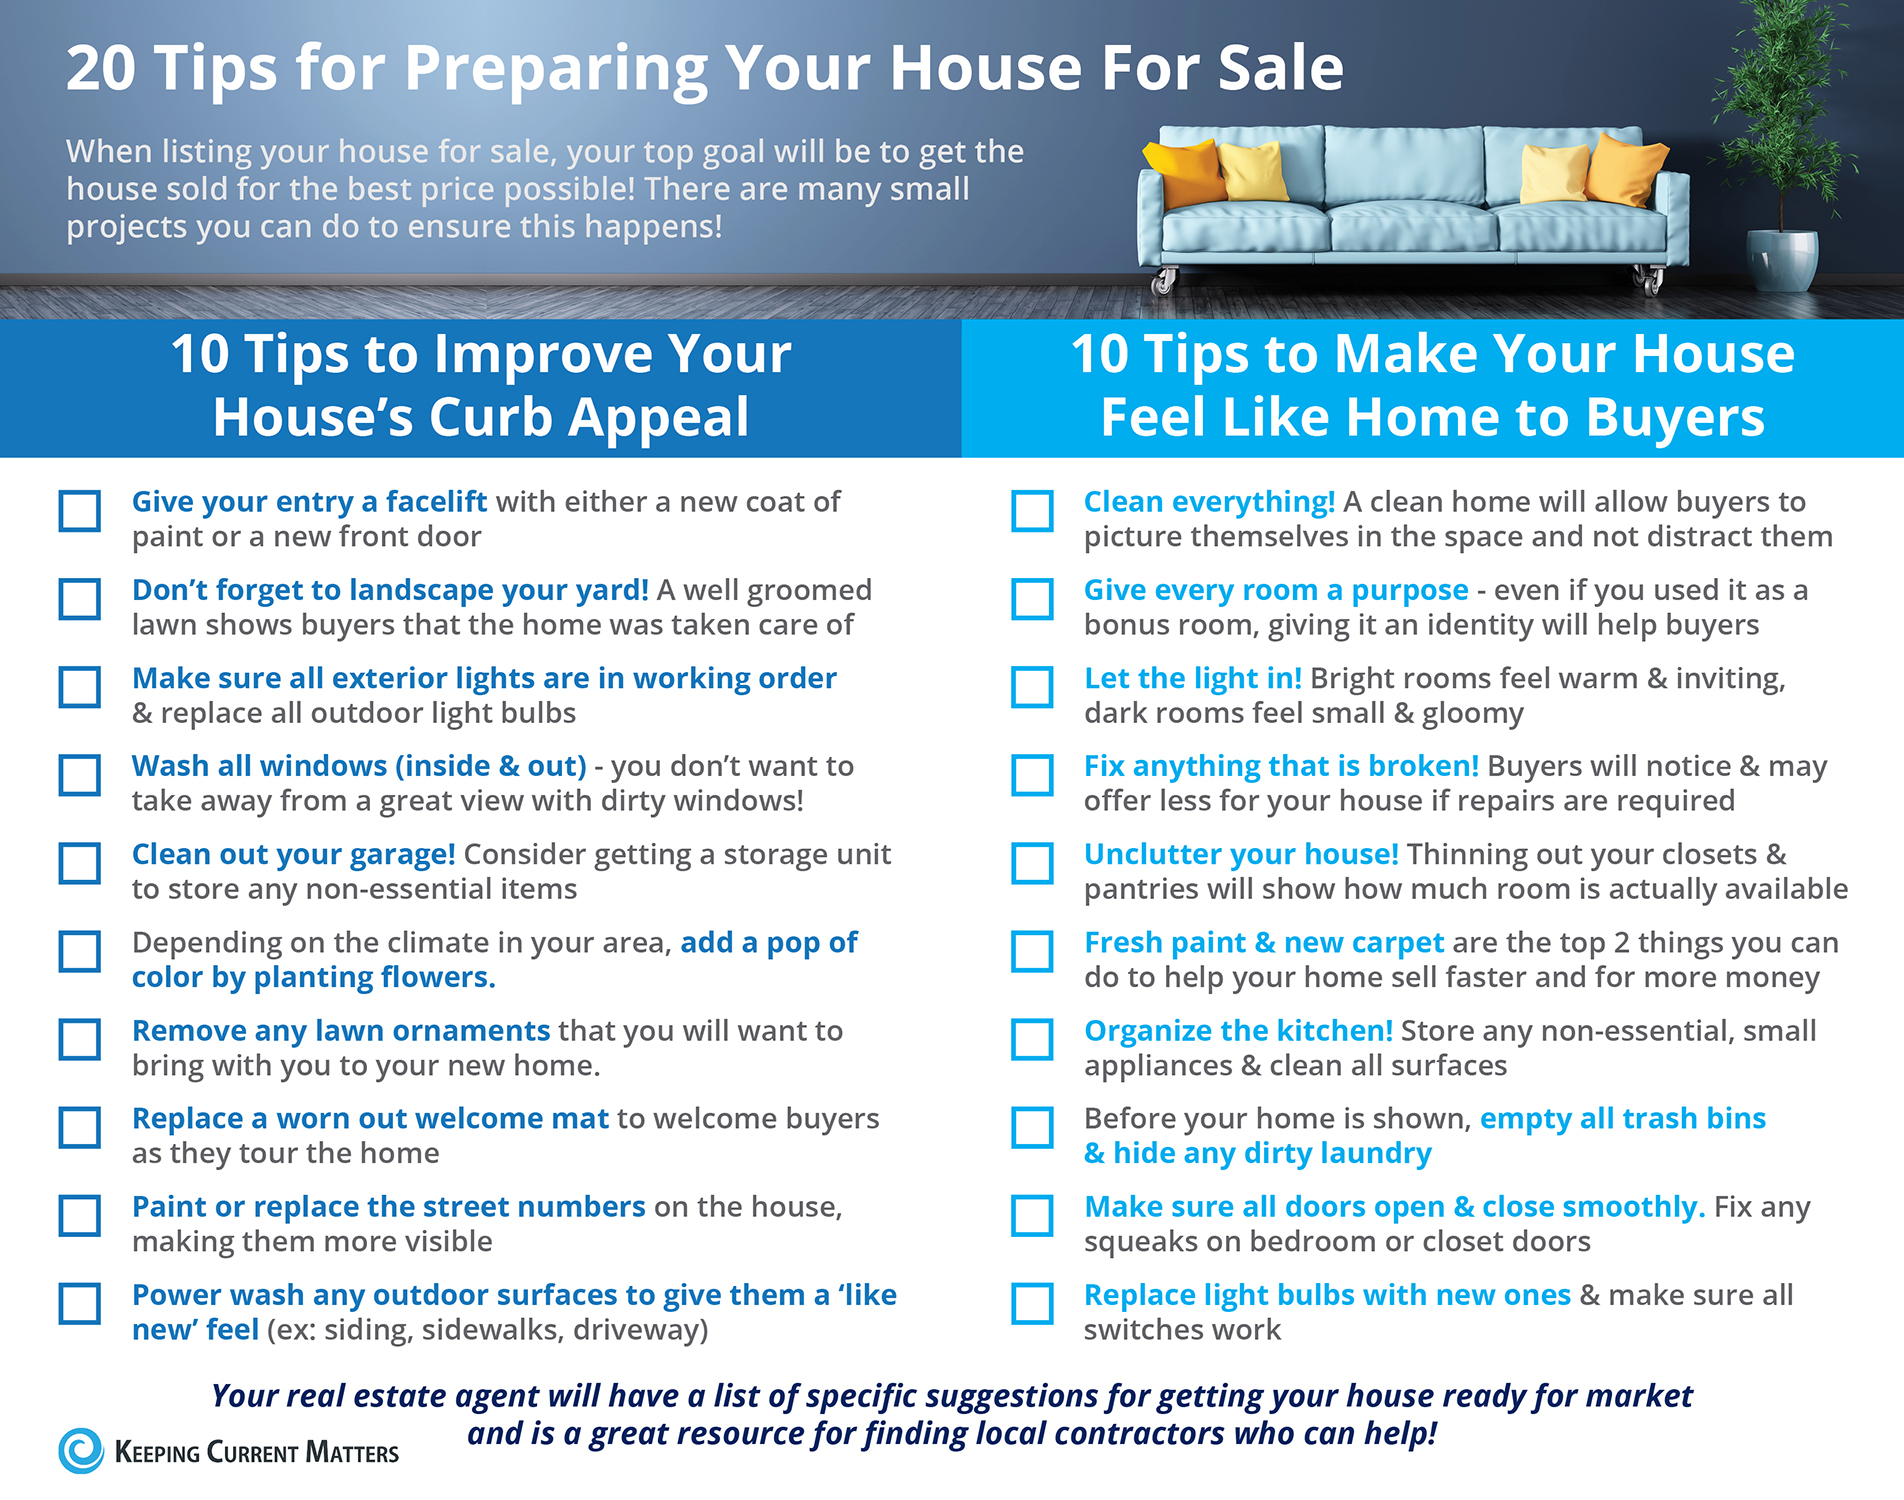 20 Tips For Preparing Your House This Fall Infographic Keeping Cur